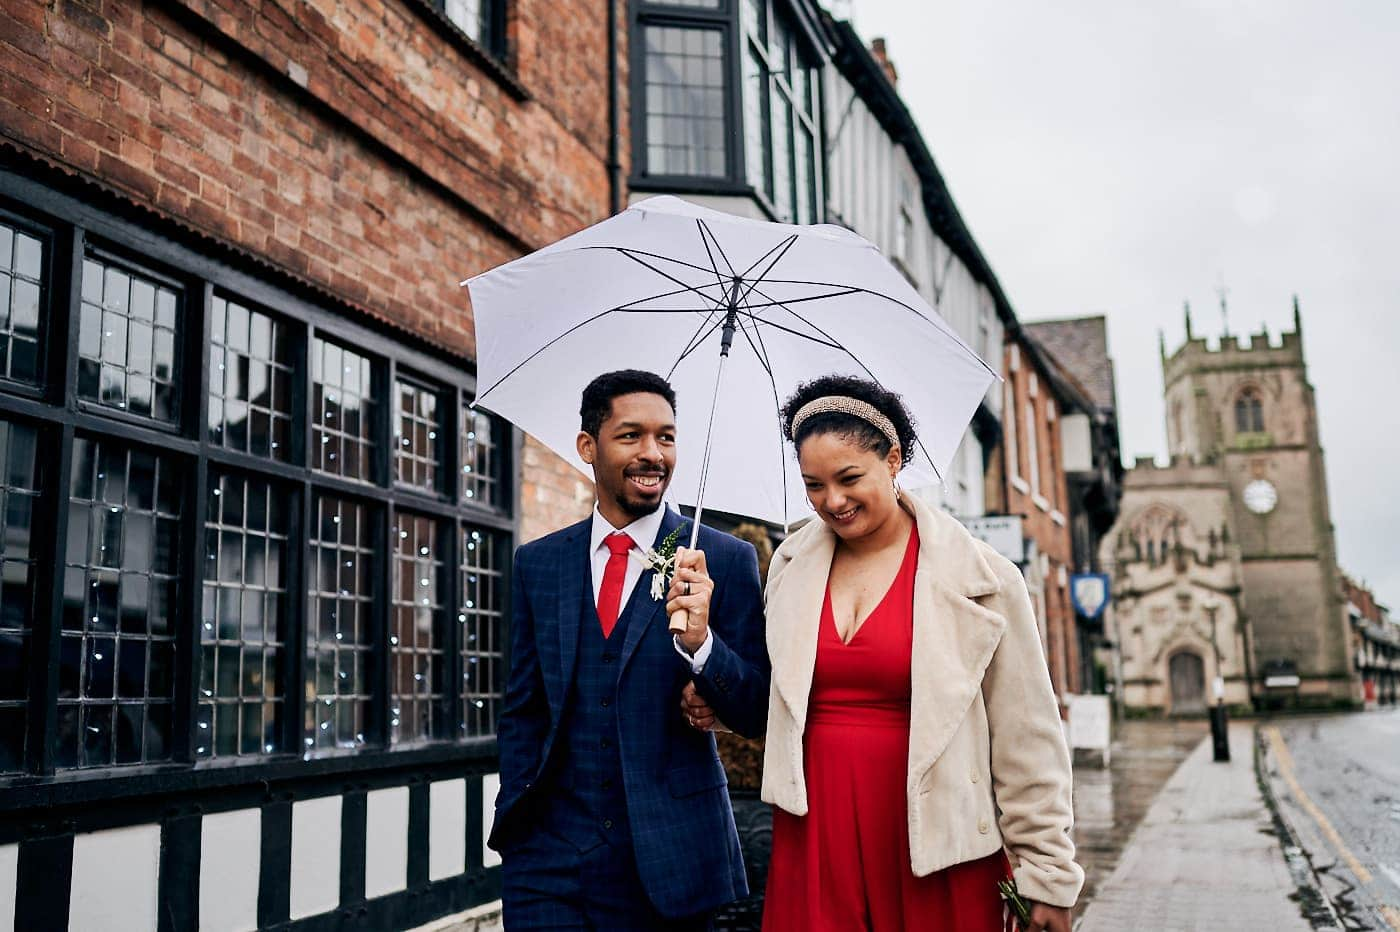 Bride and groom happy and smiling as they walk together in Stratford-upon-Avon